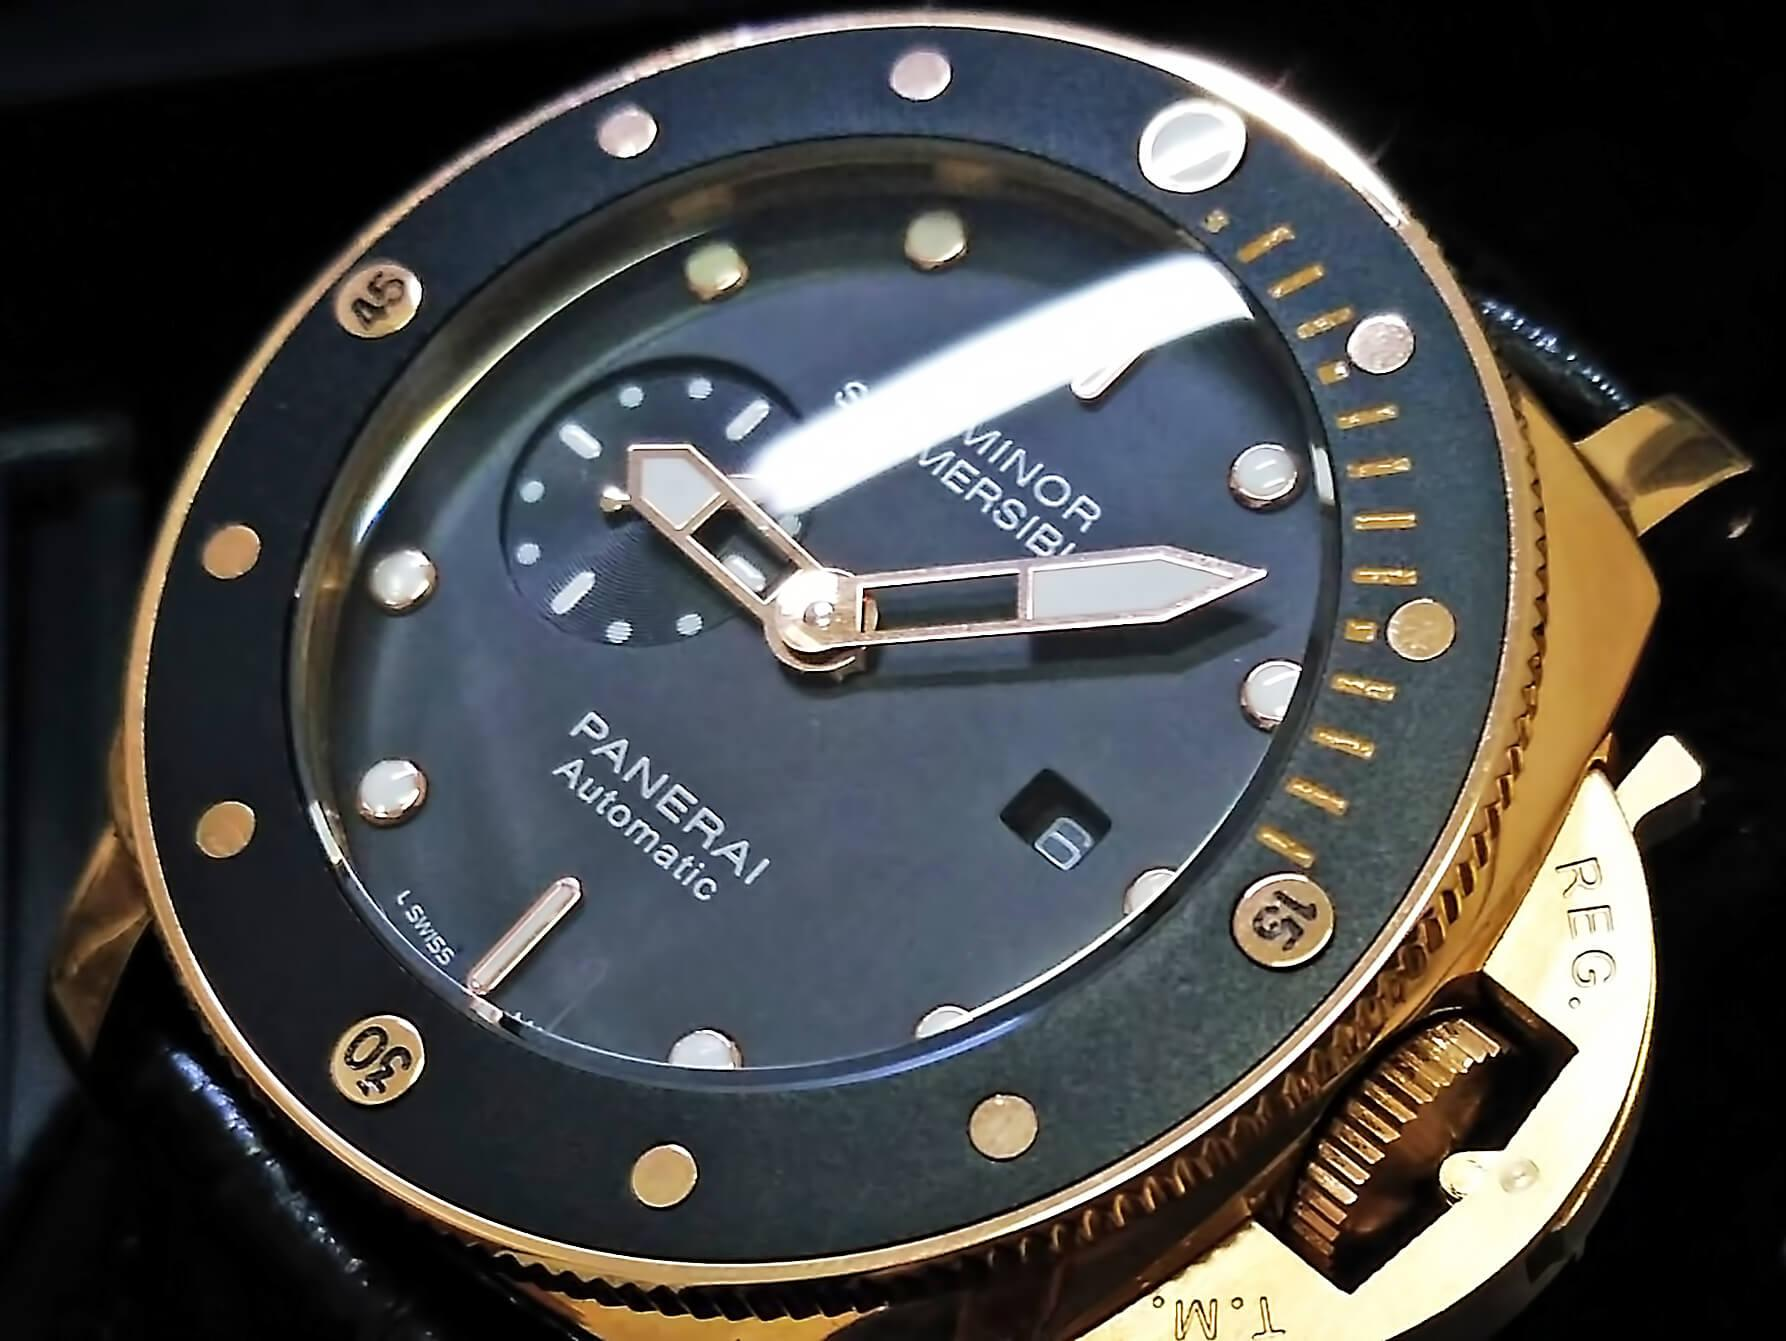 Циферблат реплики Panerai Submersible 1950 3 Days Automatic Oro Rosso